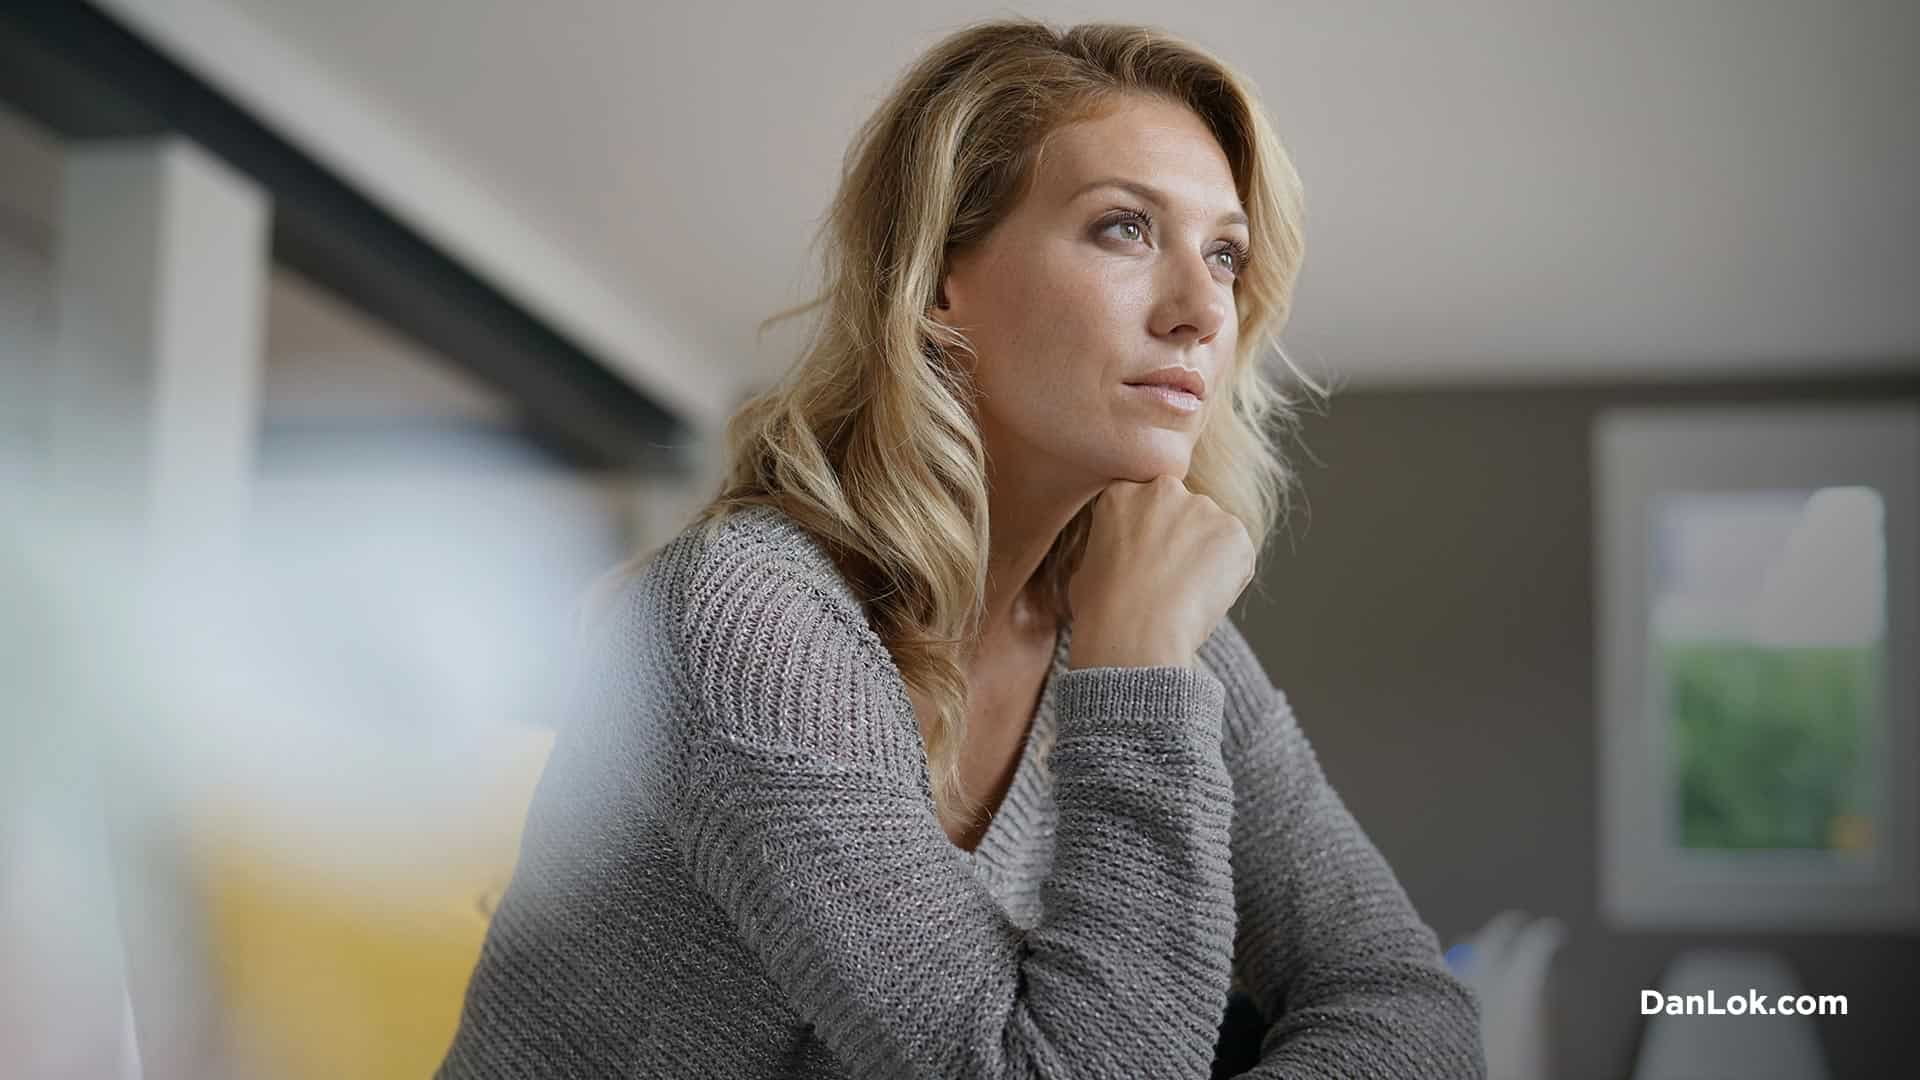 Person-looking-sombre-and-thoughtful